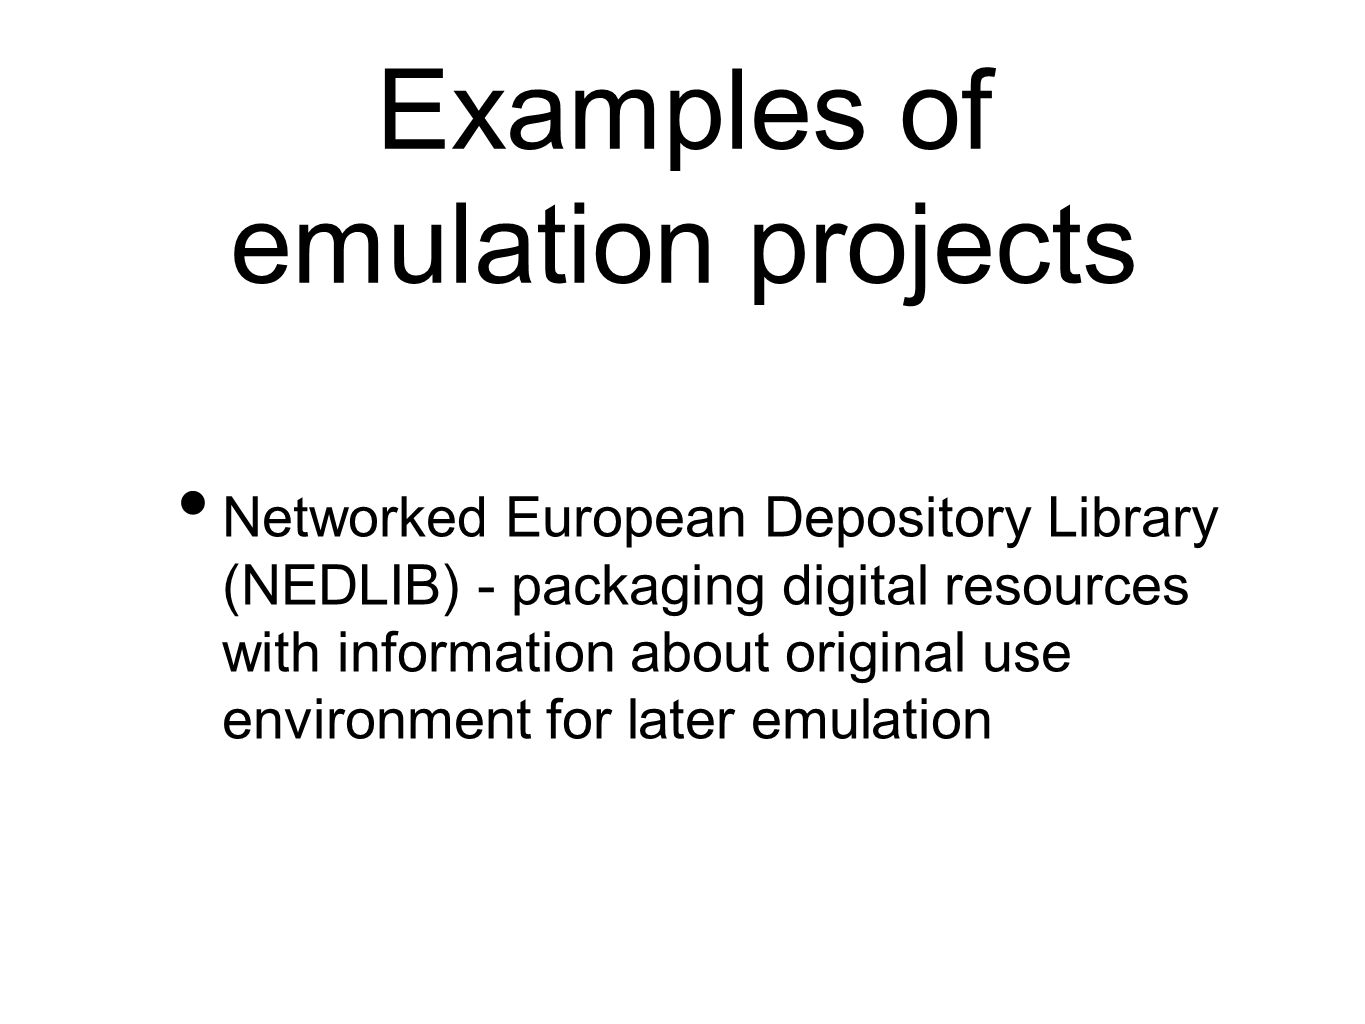 Examples of emulation projects Networked European Depository Library (NEDLIB) - packaging digital resources with information about original use environment for later emulation